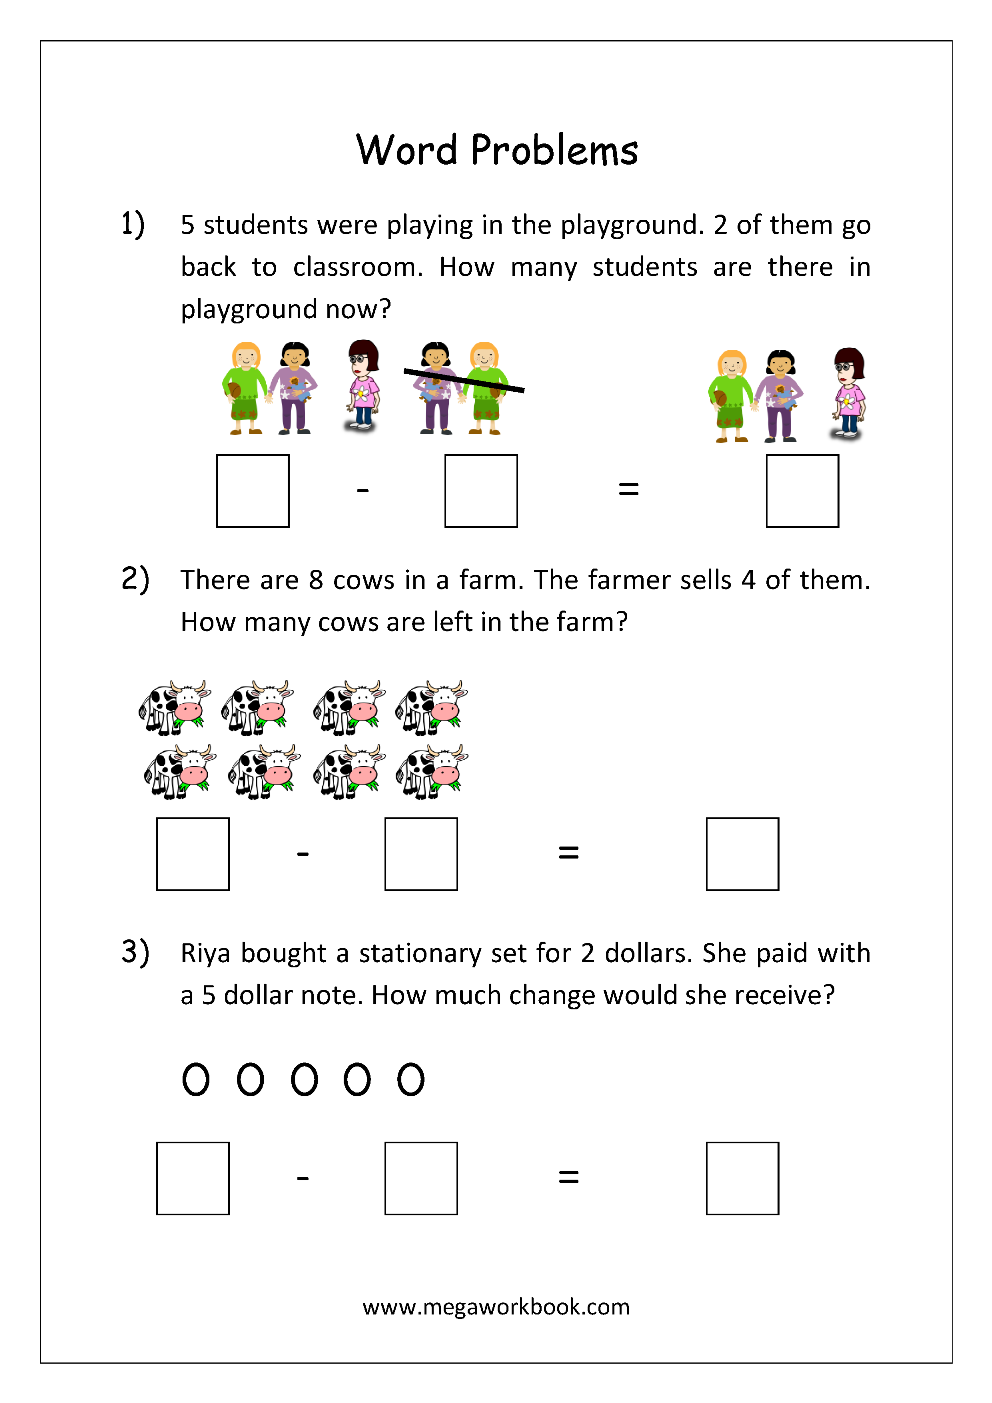 Addition And Subtraction Word Problems Worksheets For Kindergarten And Grade 1 Story Sums S Word Problem Worksheets Subtraction Word Problems Word Problems